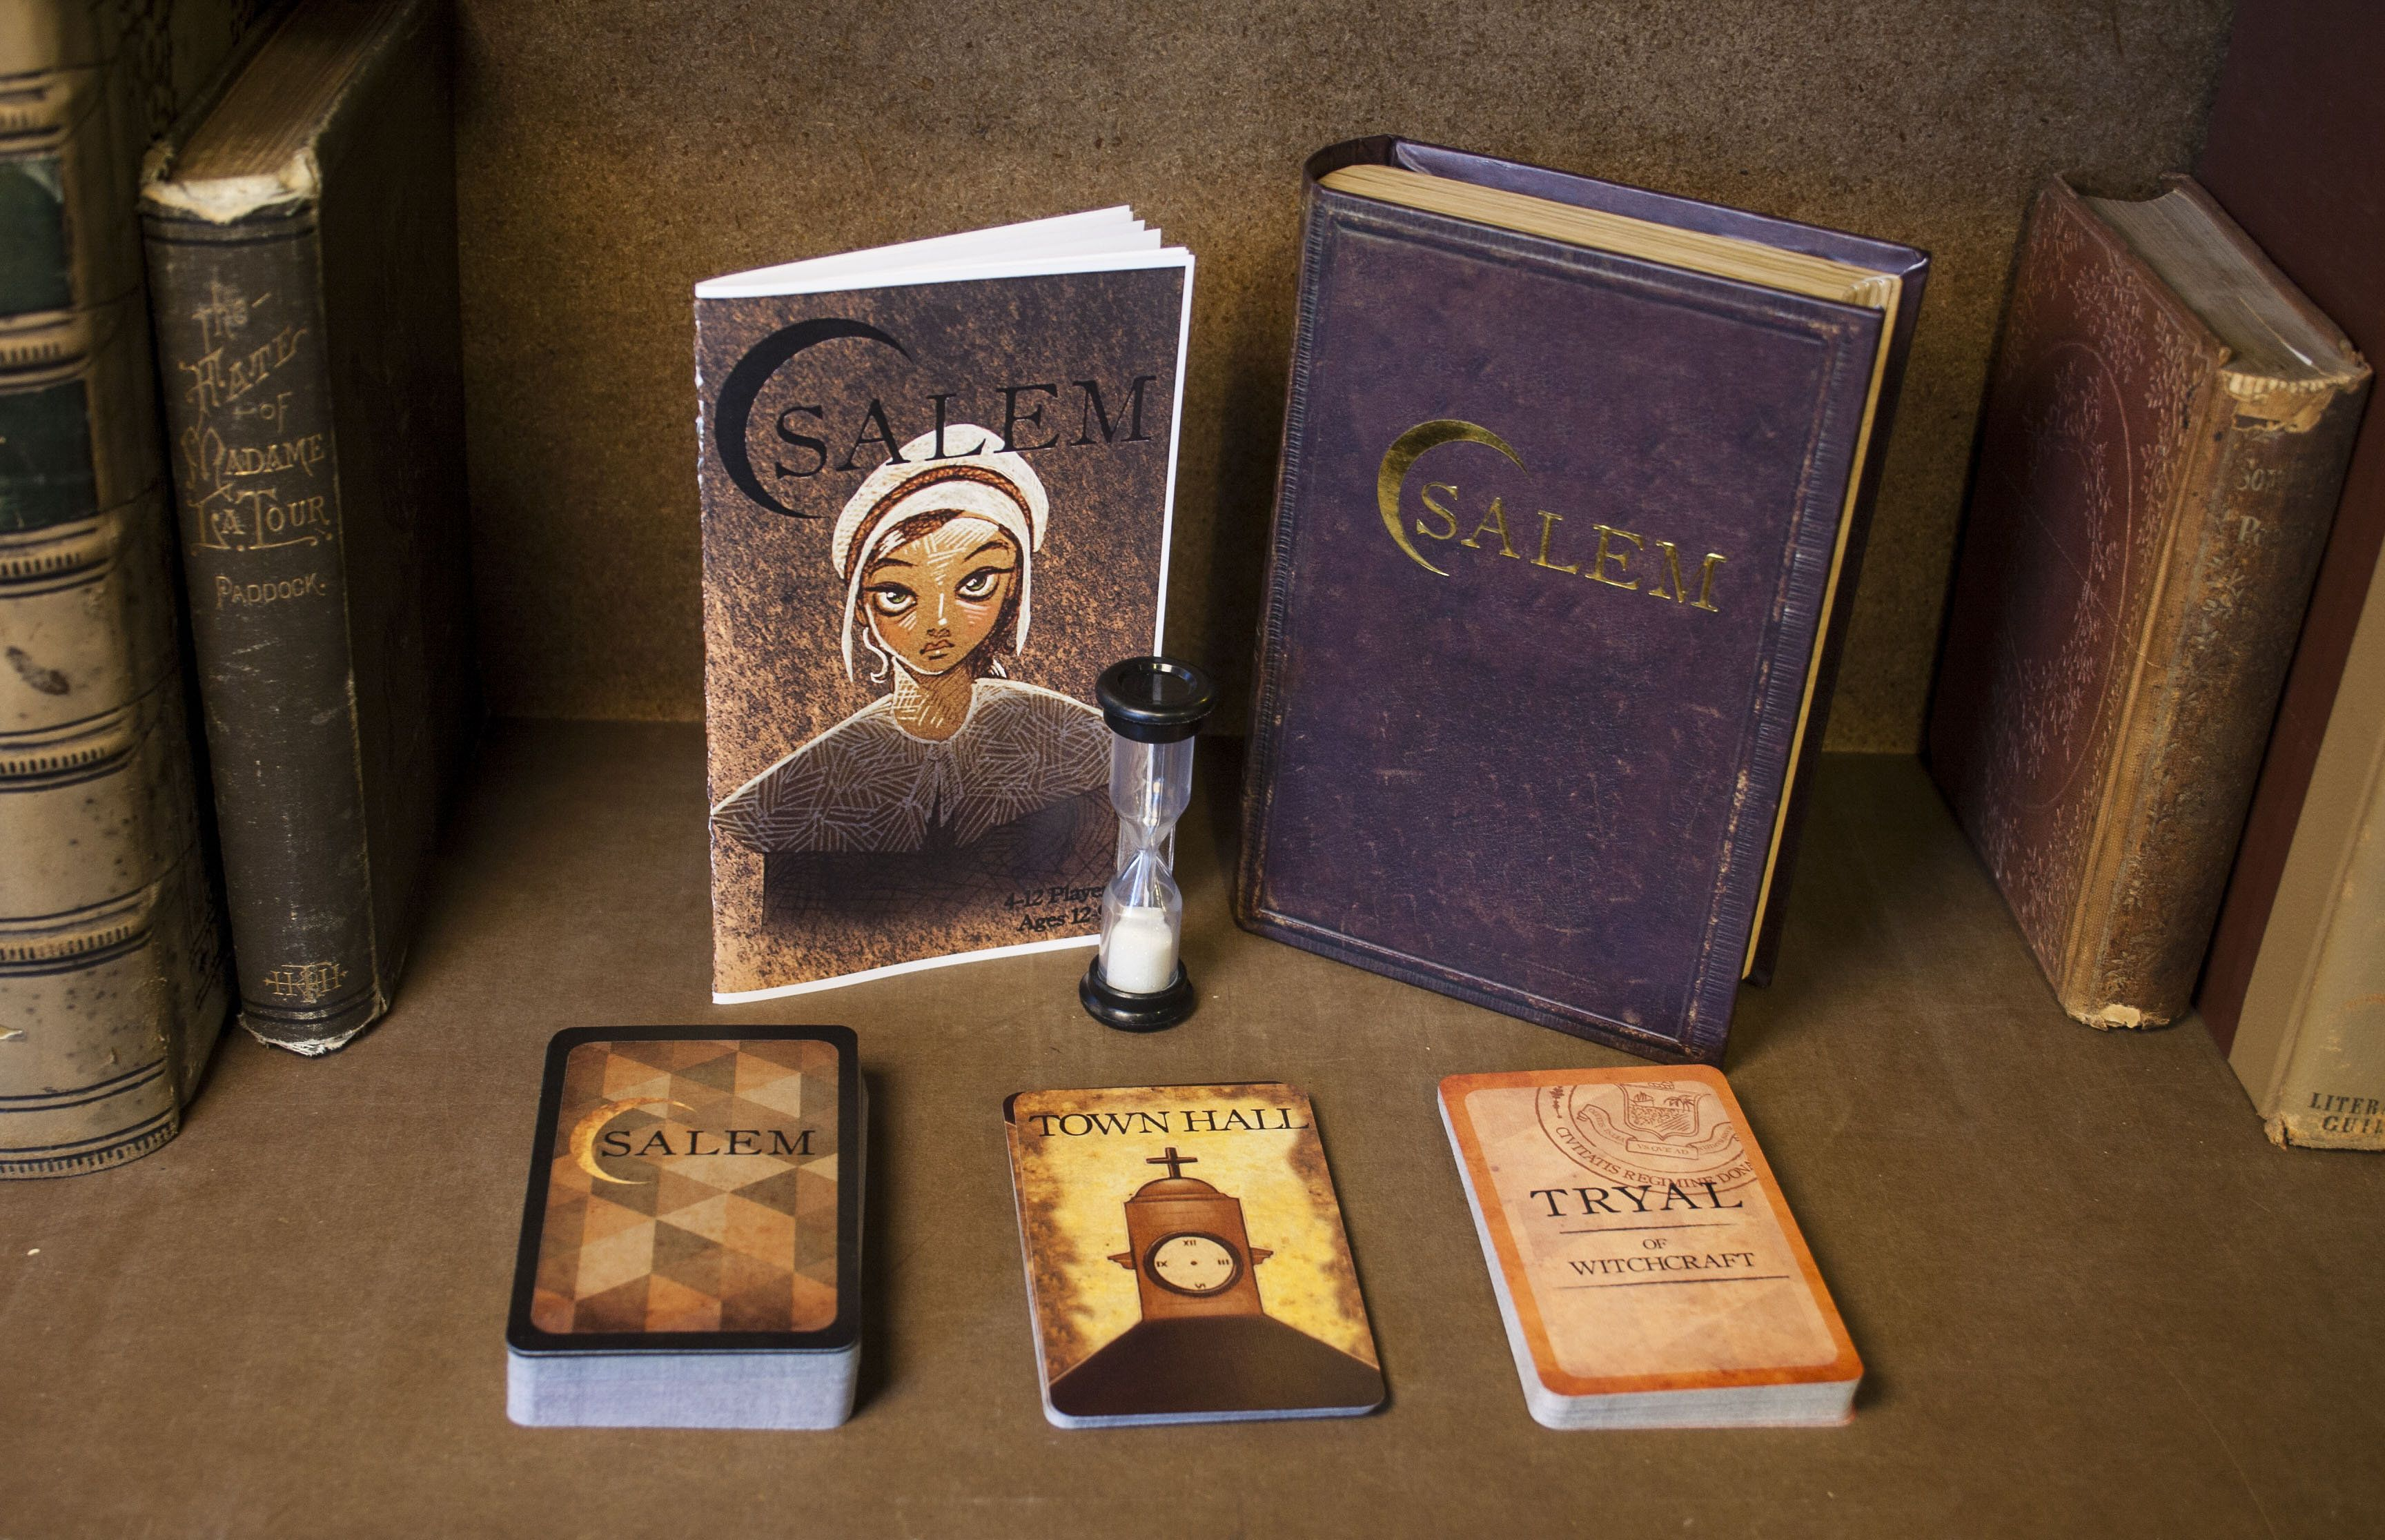 Salem Witch Trials card game. Uses fake book for game box